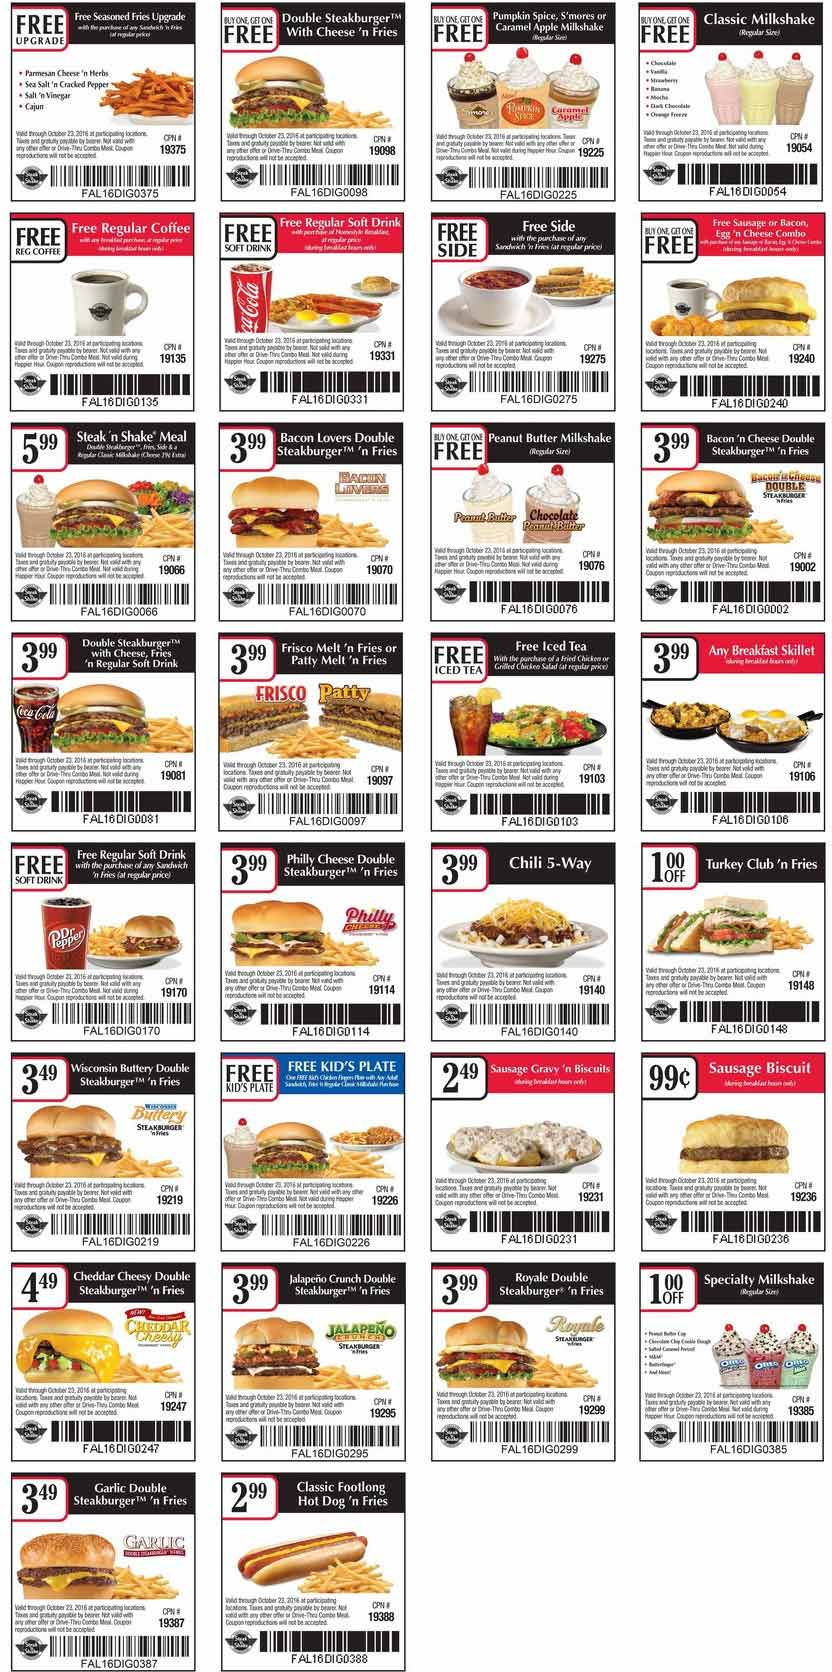 photo about Steak and Shake Coupons Printable titled Steak out coupon codes - Current Retail store Specials